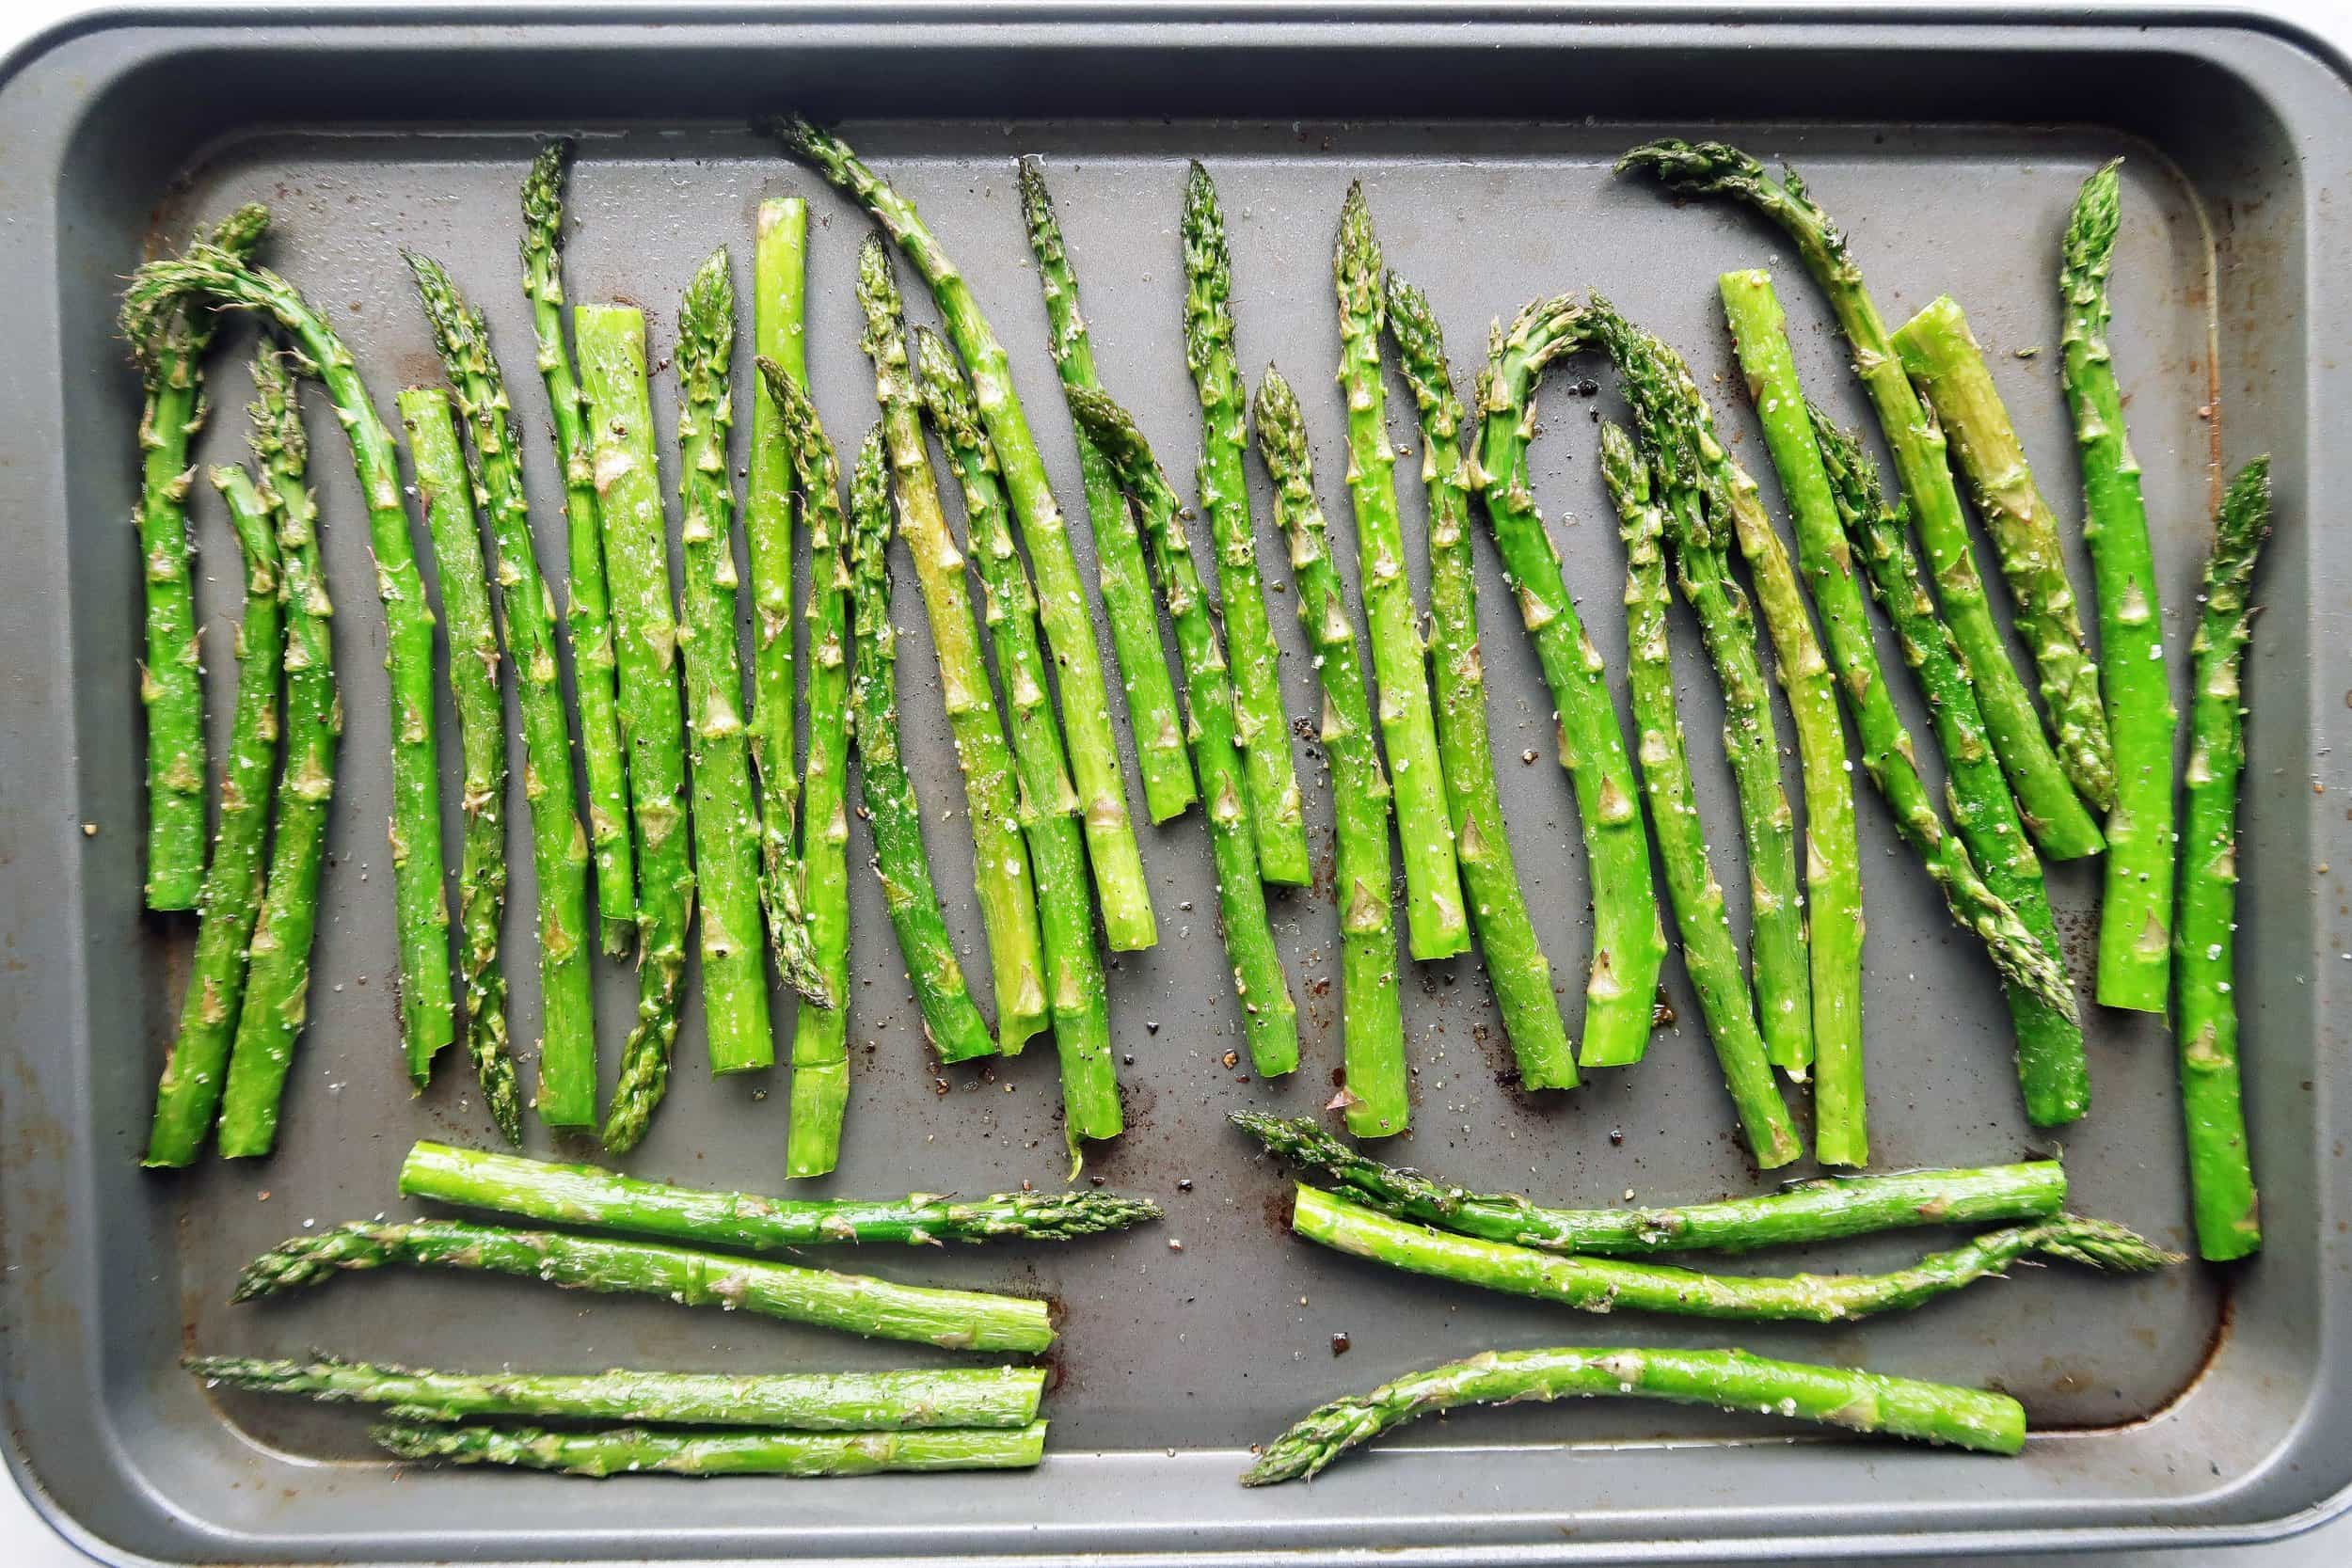 Asparagus coated with olive oil, salt, and pepper, lined up on a sheet pan, ready for roasting.